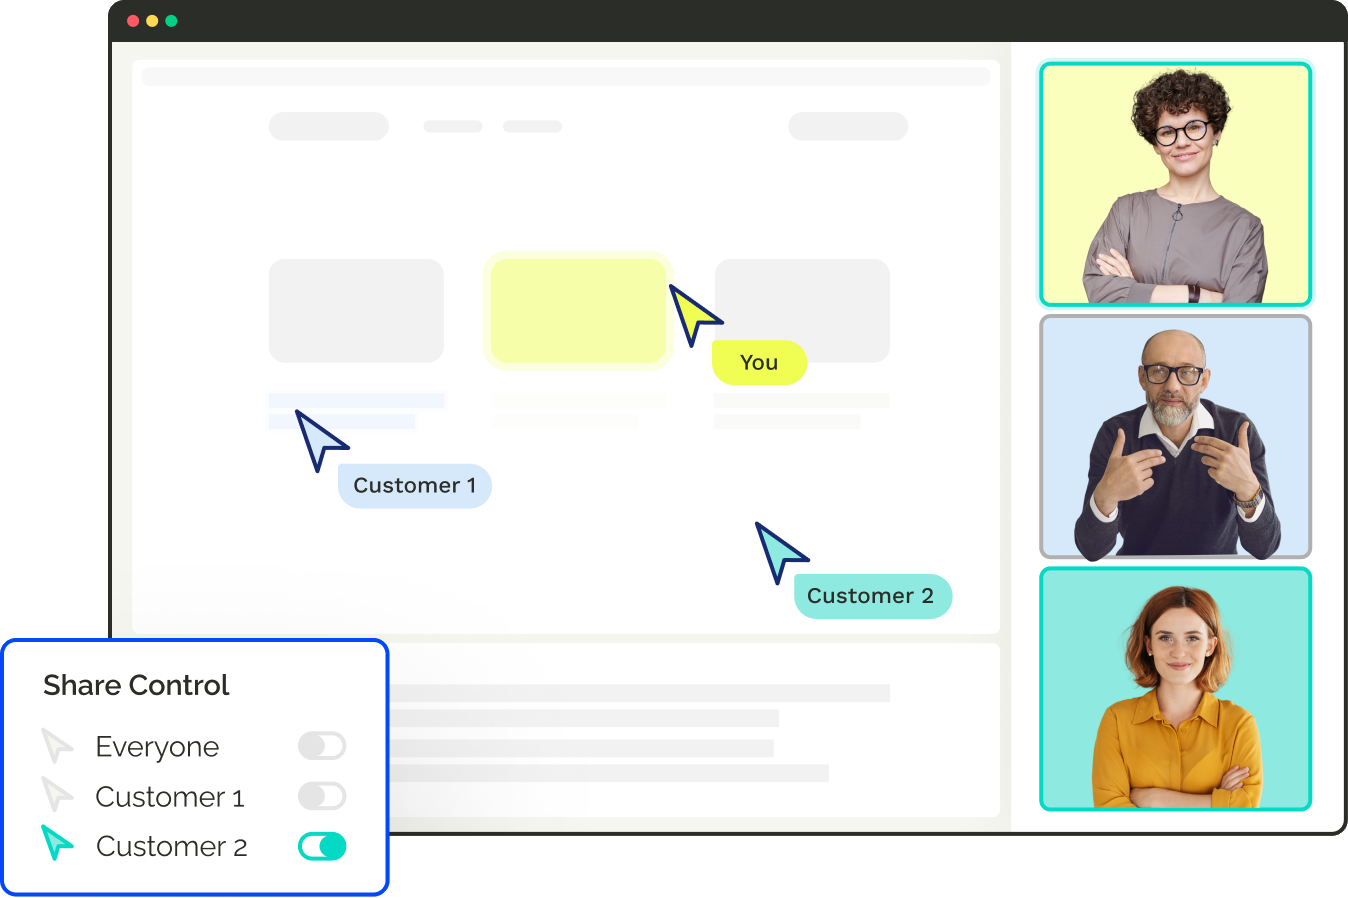 Engage customers in any meeting by sharing real-time control. Interact with the same apps, product, websites, content, & more.